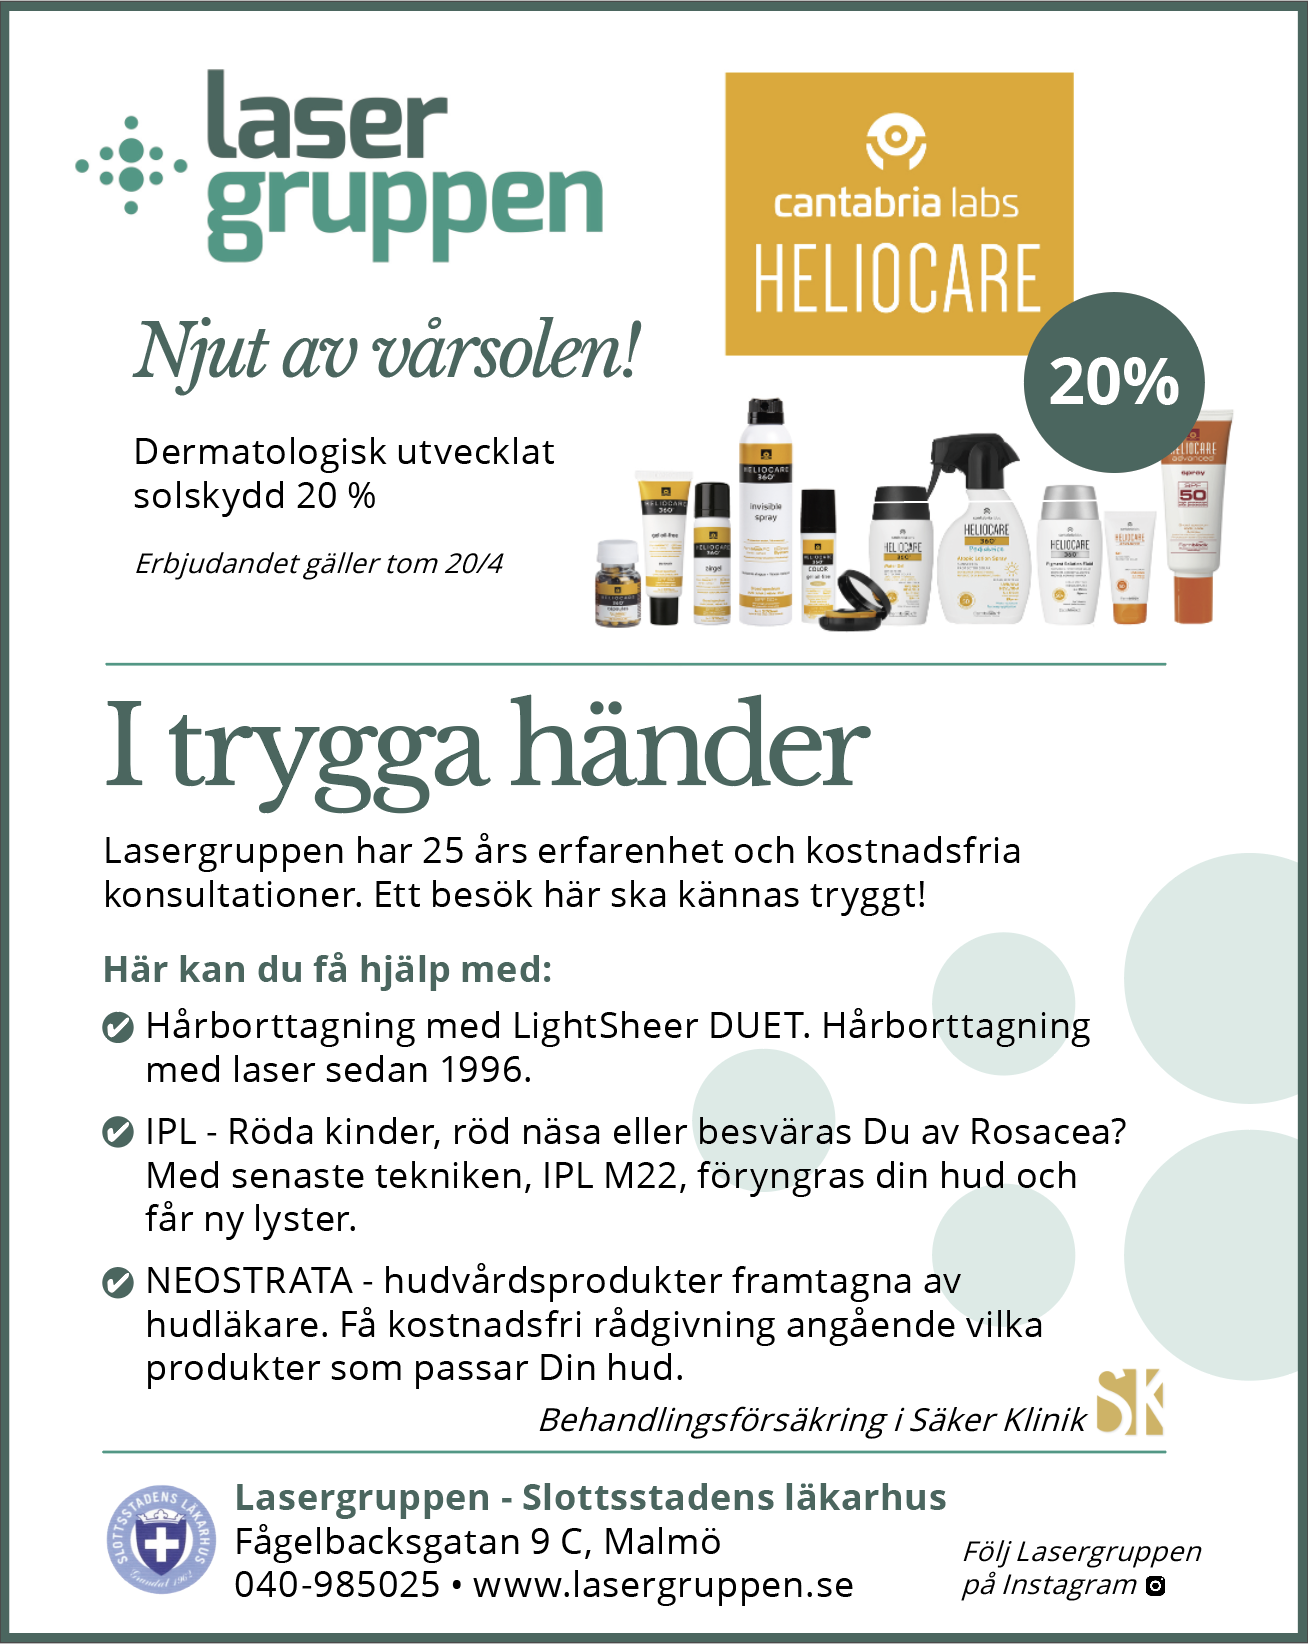 Heliocare offer